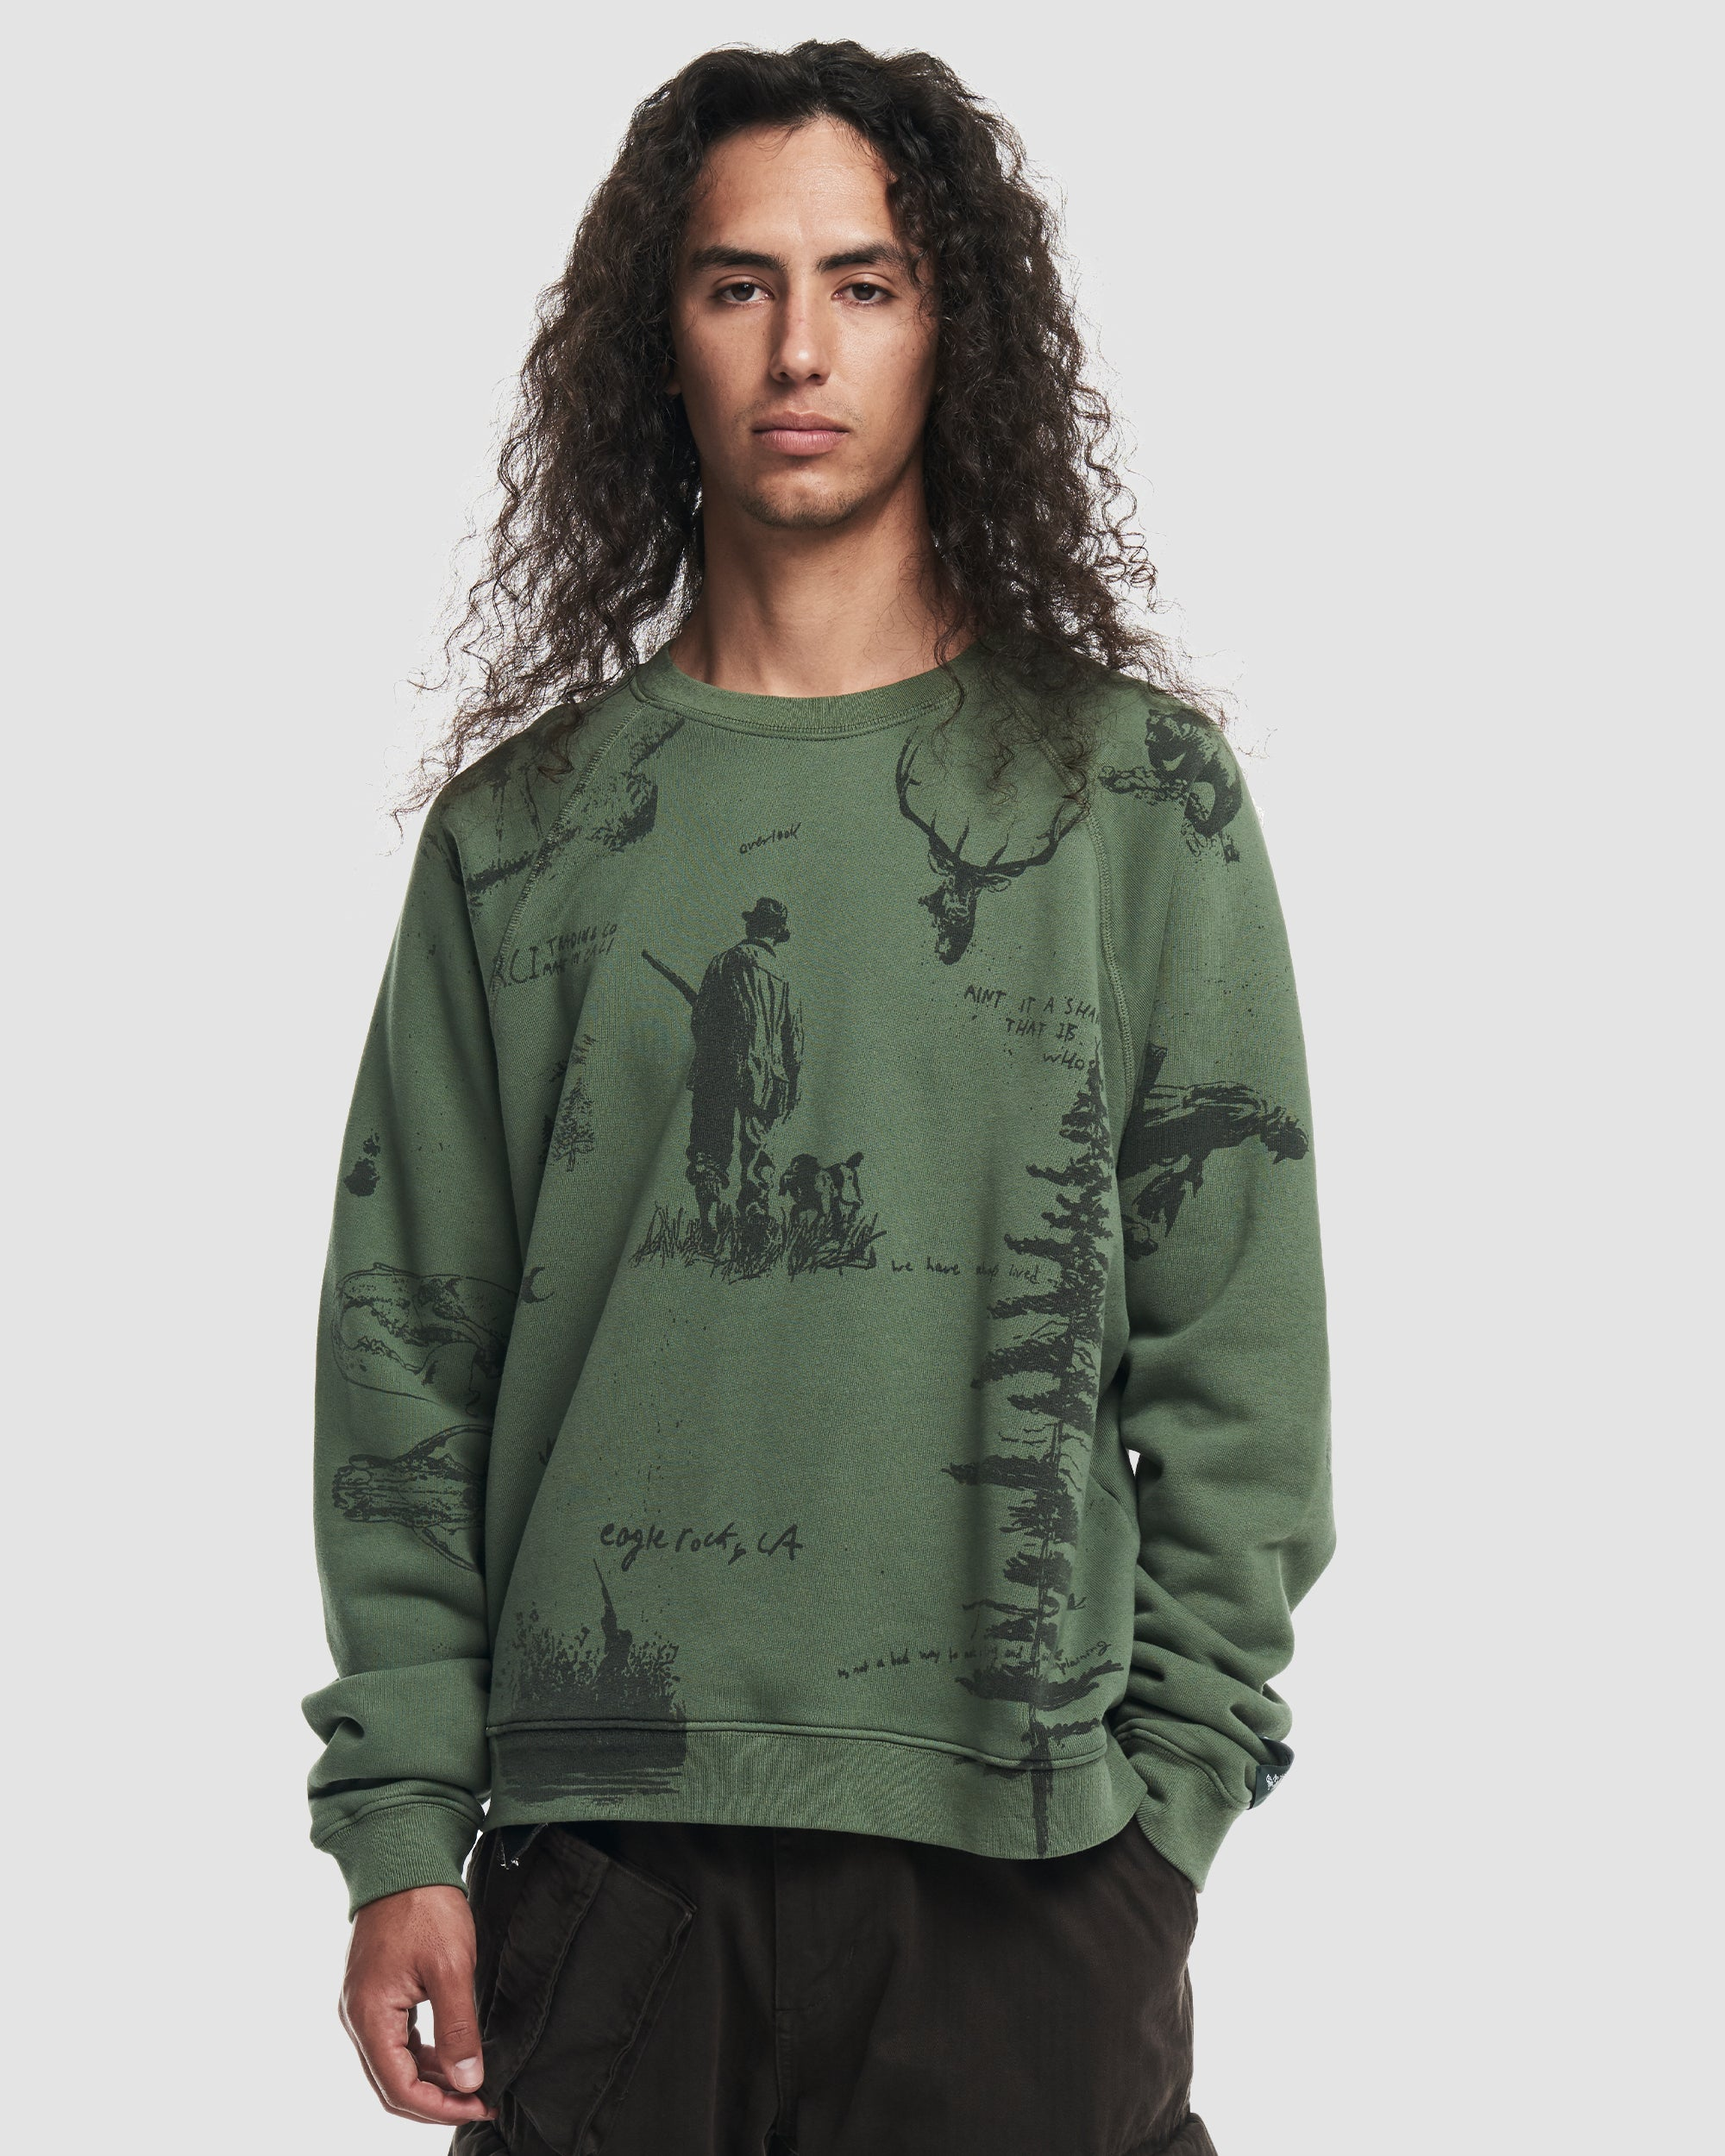 Hand Drawn All Over Print Crewneck Sweatshirt in Sage